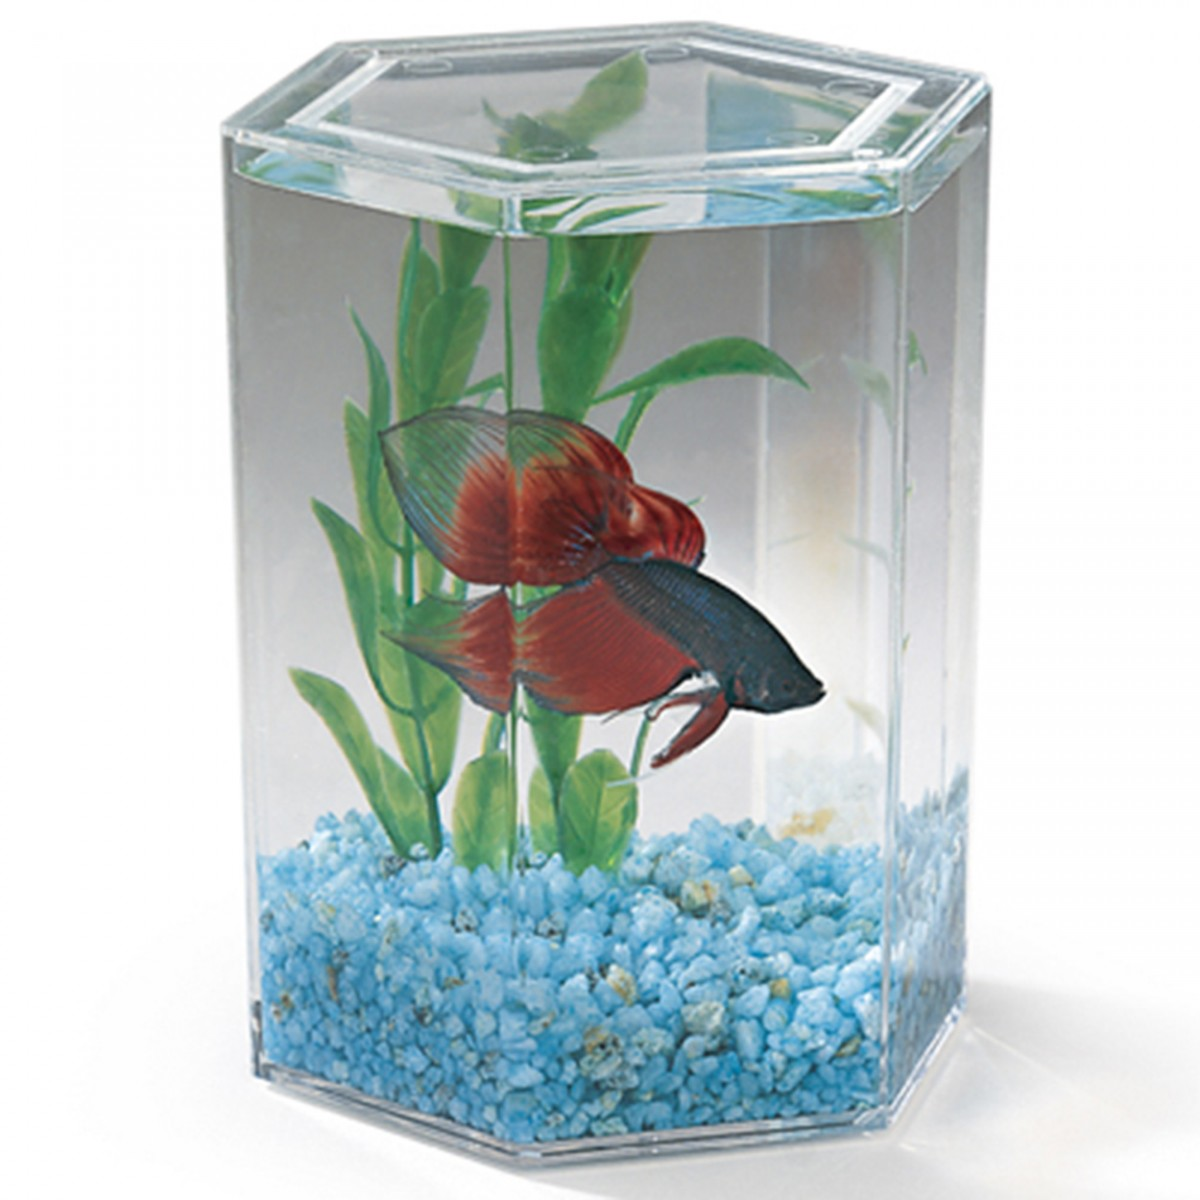 Lee 39 s hexagon betta keeper small for The fish 95 5